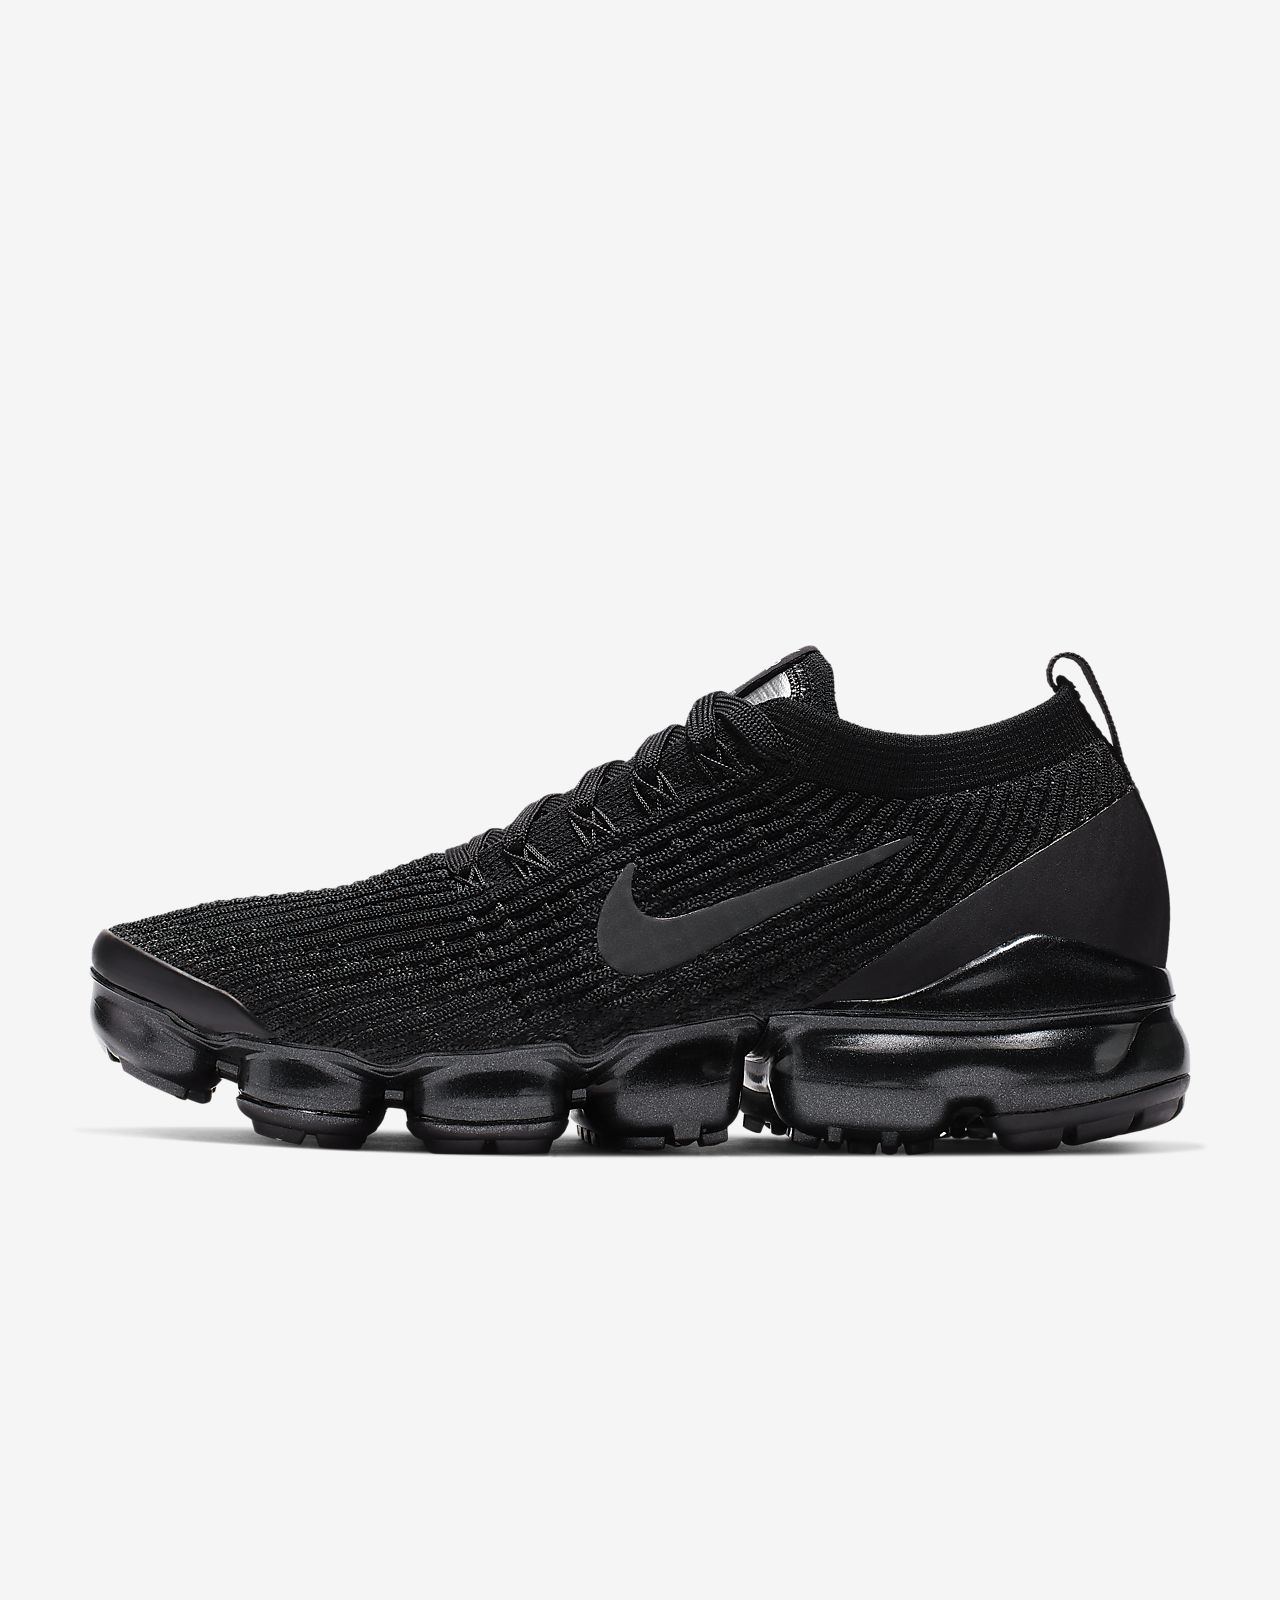 1 YEAR AFTER WEARING NIKE AIR VAPORMAX: PROS & CONS